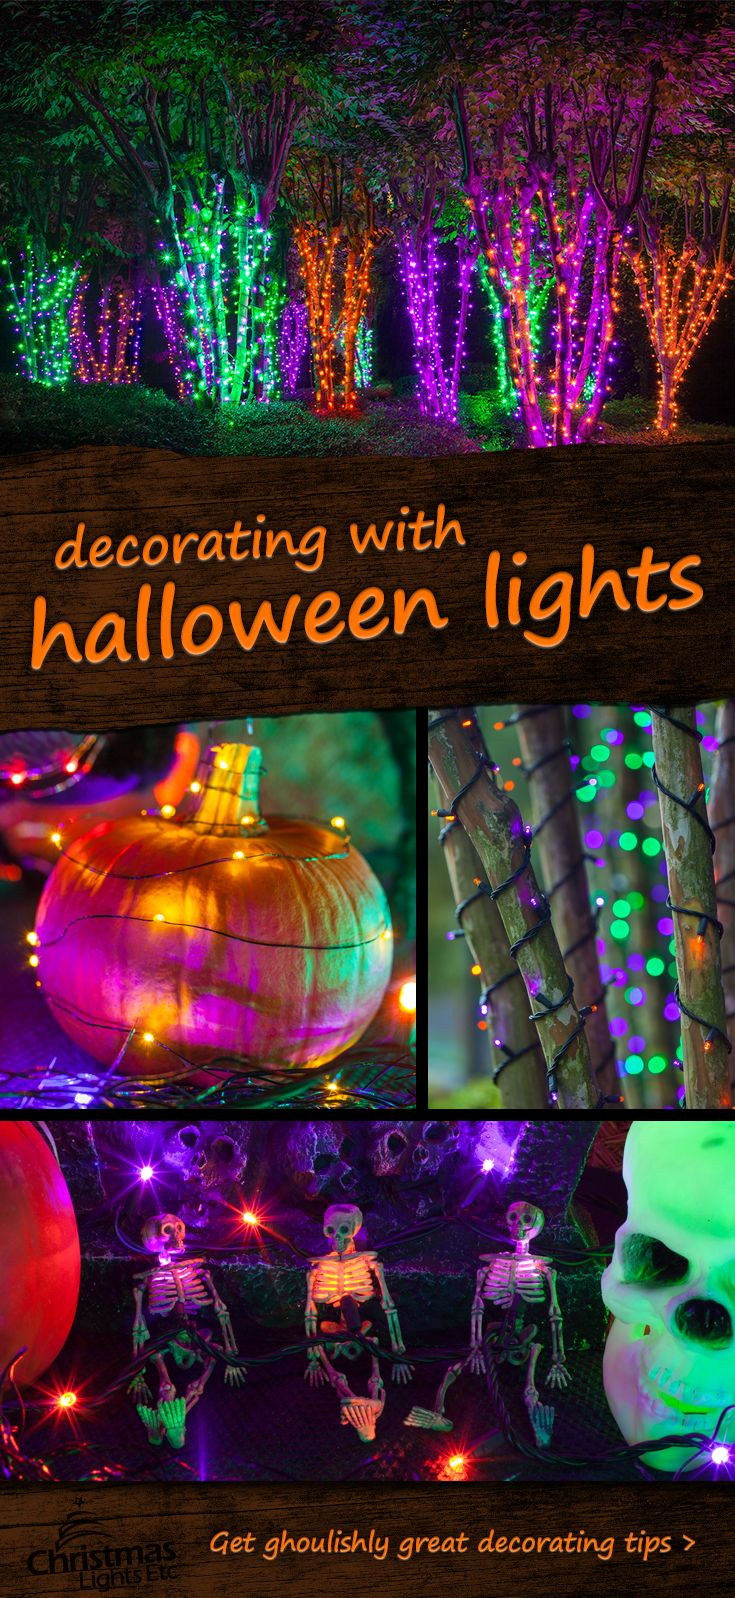 Diy Halloween String Lights : 25+ Best Ideas about Outdoor Halloween Decorations on Pinterest Outdoor halloween, Outdoor ...